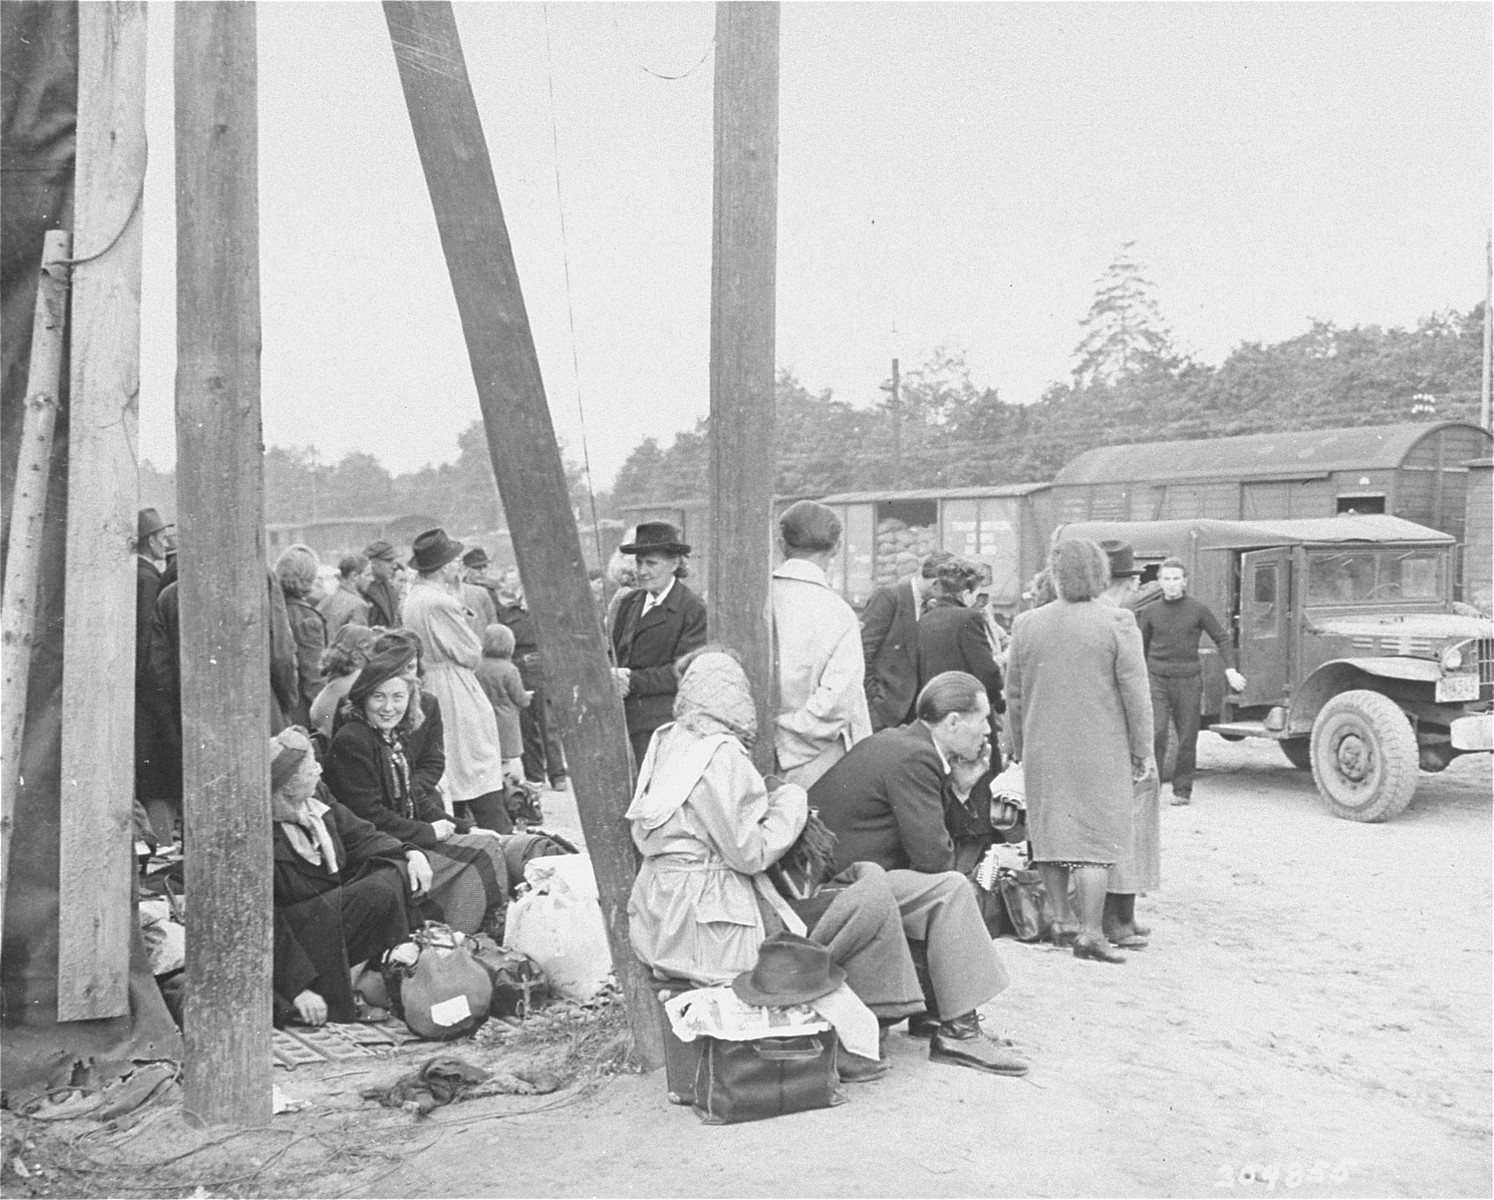 """Jewish DPs who have been evacuated from Berlin to Frankfurt as a result of the Soviet blockade, wait at the Rhine Main Airfield for transport to displaced persons camps.  The original caption reads, """"Jewish displaced persons arrive by plane at the Rhine Main Airfield, Frankfurt, Germany, from the blockaded city of Berlin, on operation """"Vittles"""". 150 came in the first group, and 180 are expected to arrive on July 24, 1948. Most of these DPs have been granted visas by the new State of Israel, and will go to DP camps in the U.S. zone to await shipment to Palestine, while others will leave for Canada, France and the U.S.. Here DPs wait for trucks to arrive to carry them to trains."""""""